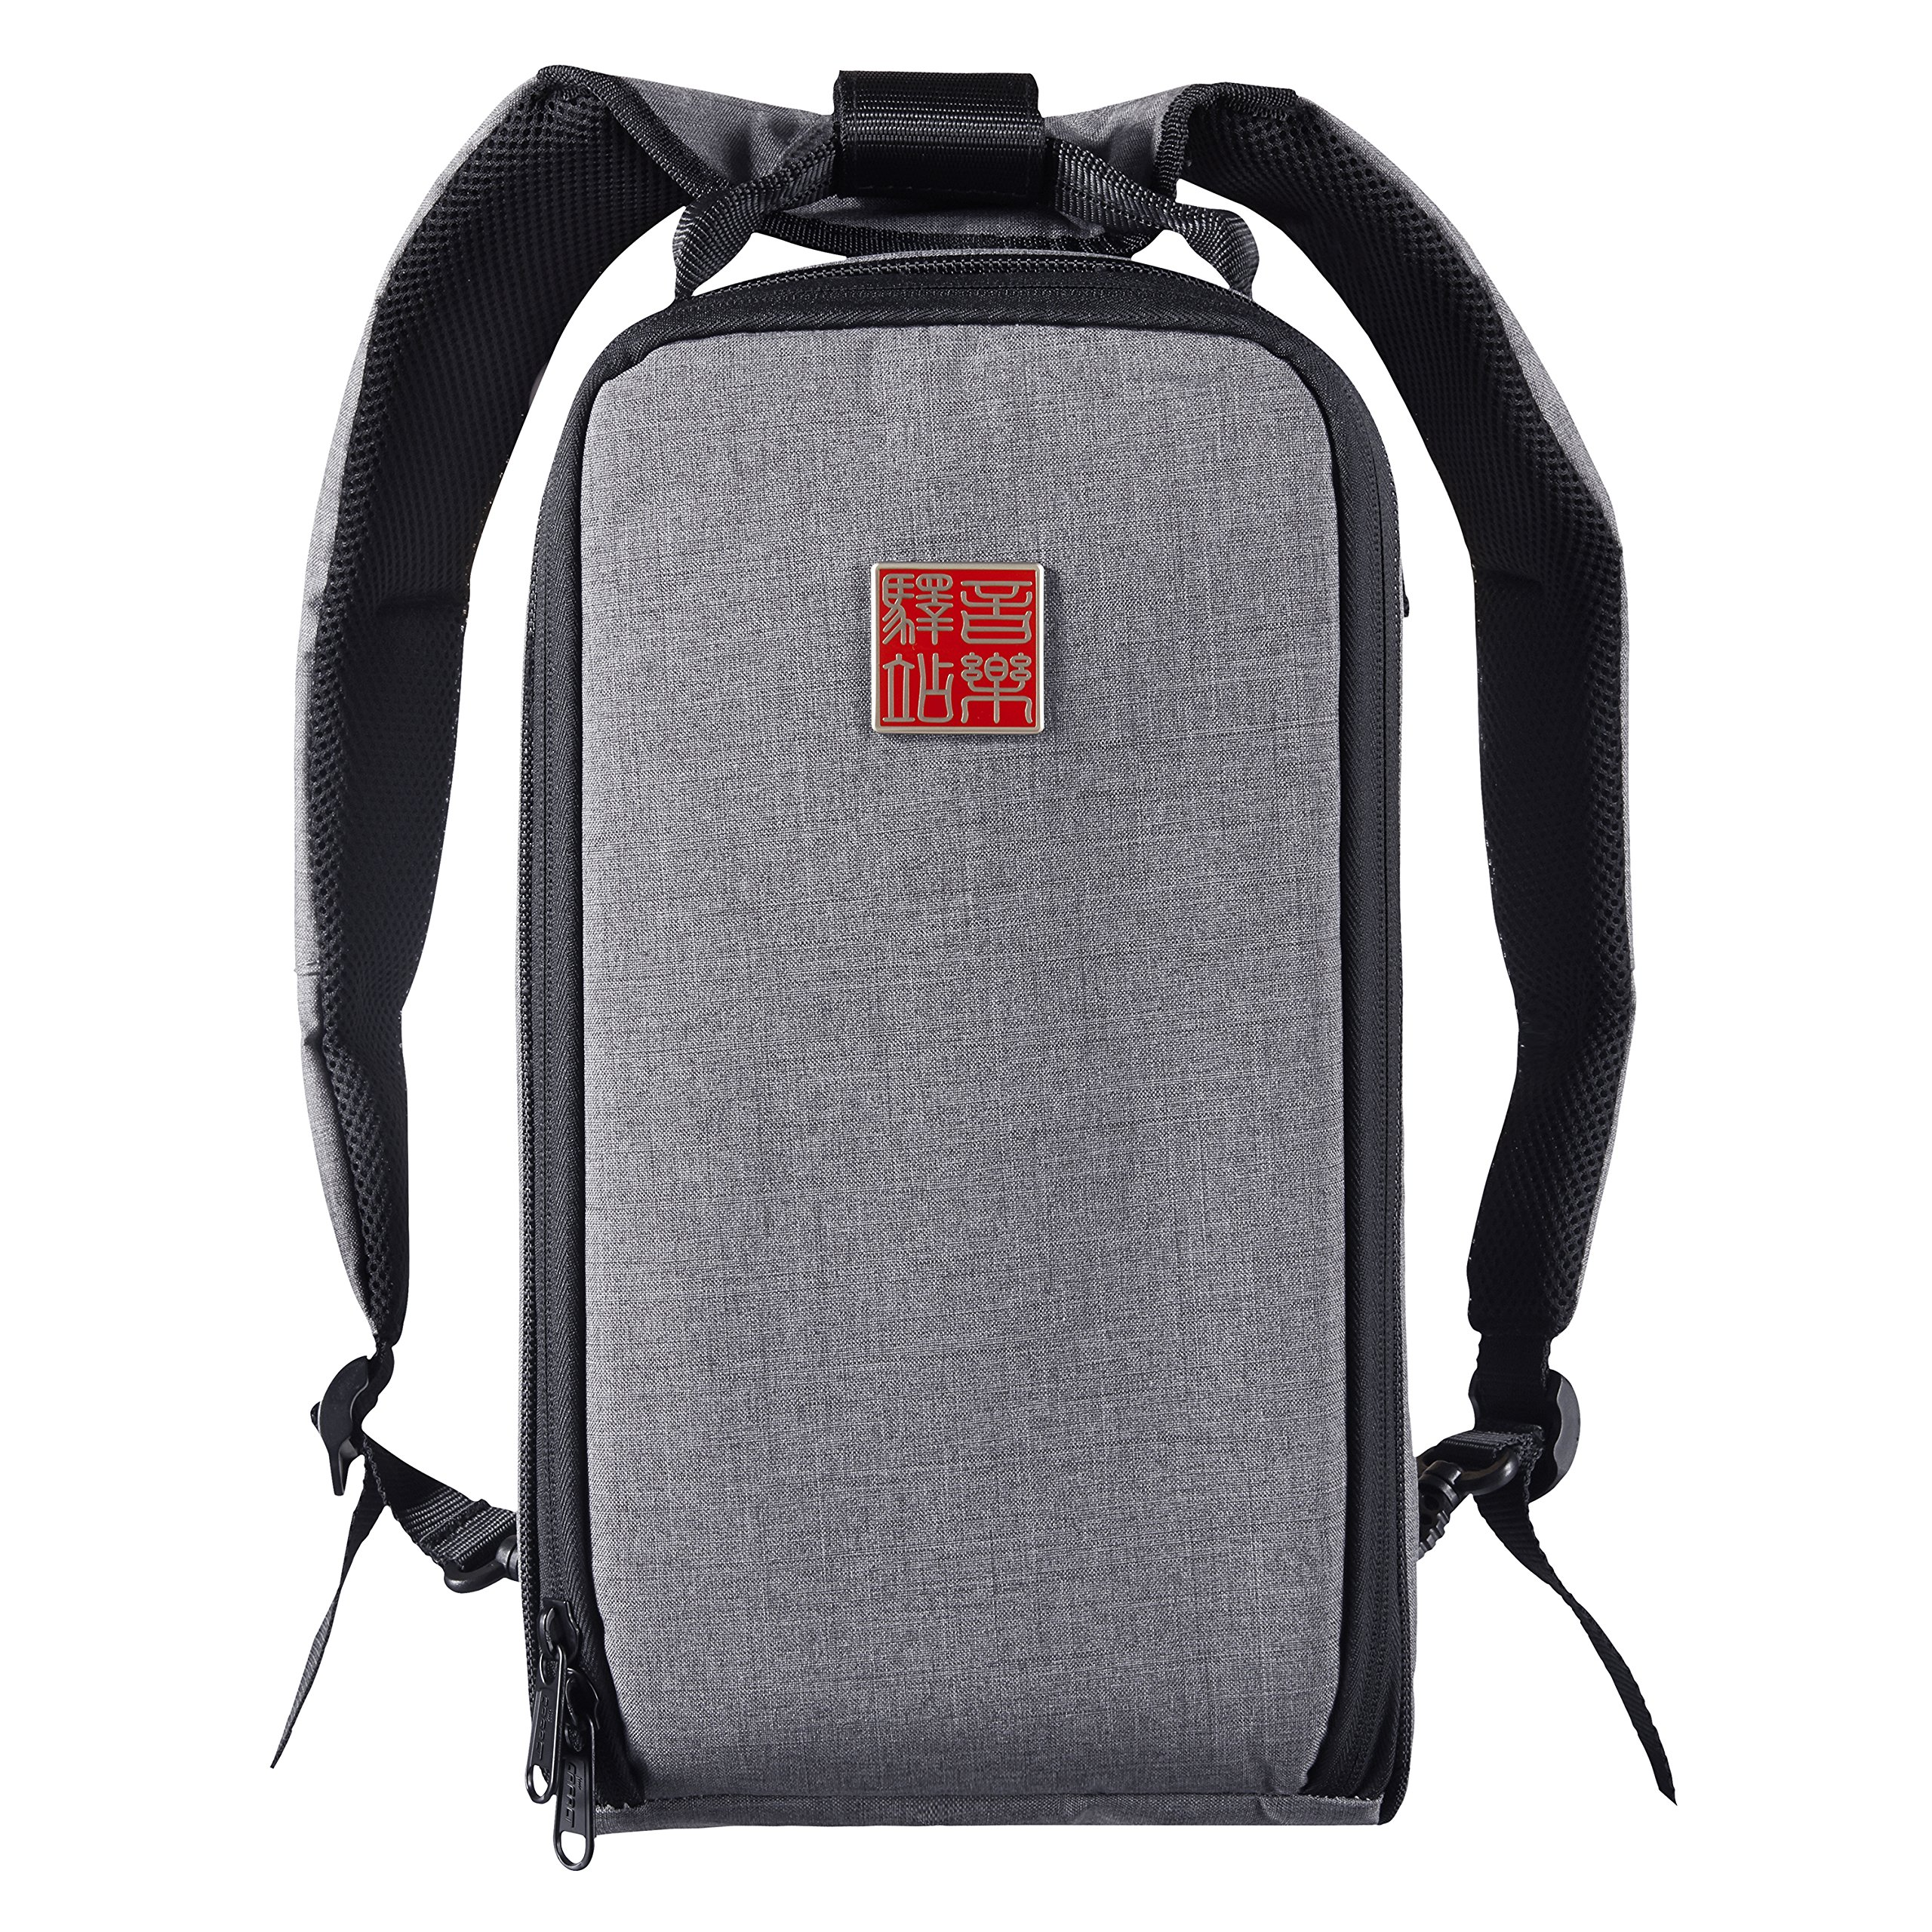 Music Area Guitar Effect Pedal Gig Bag Heat Insulated - Grey